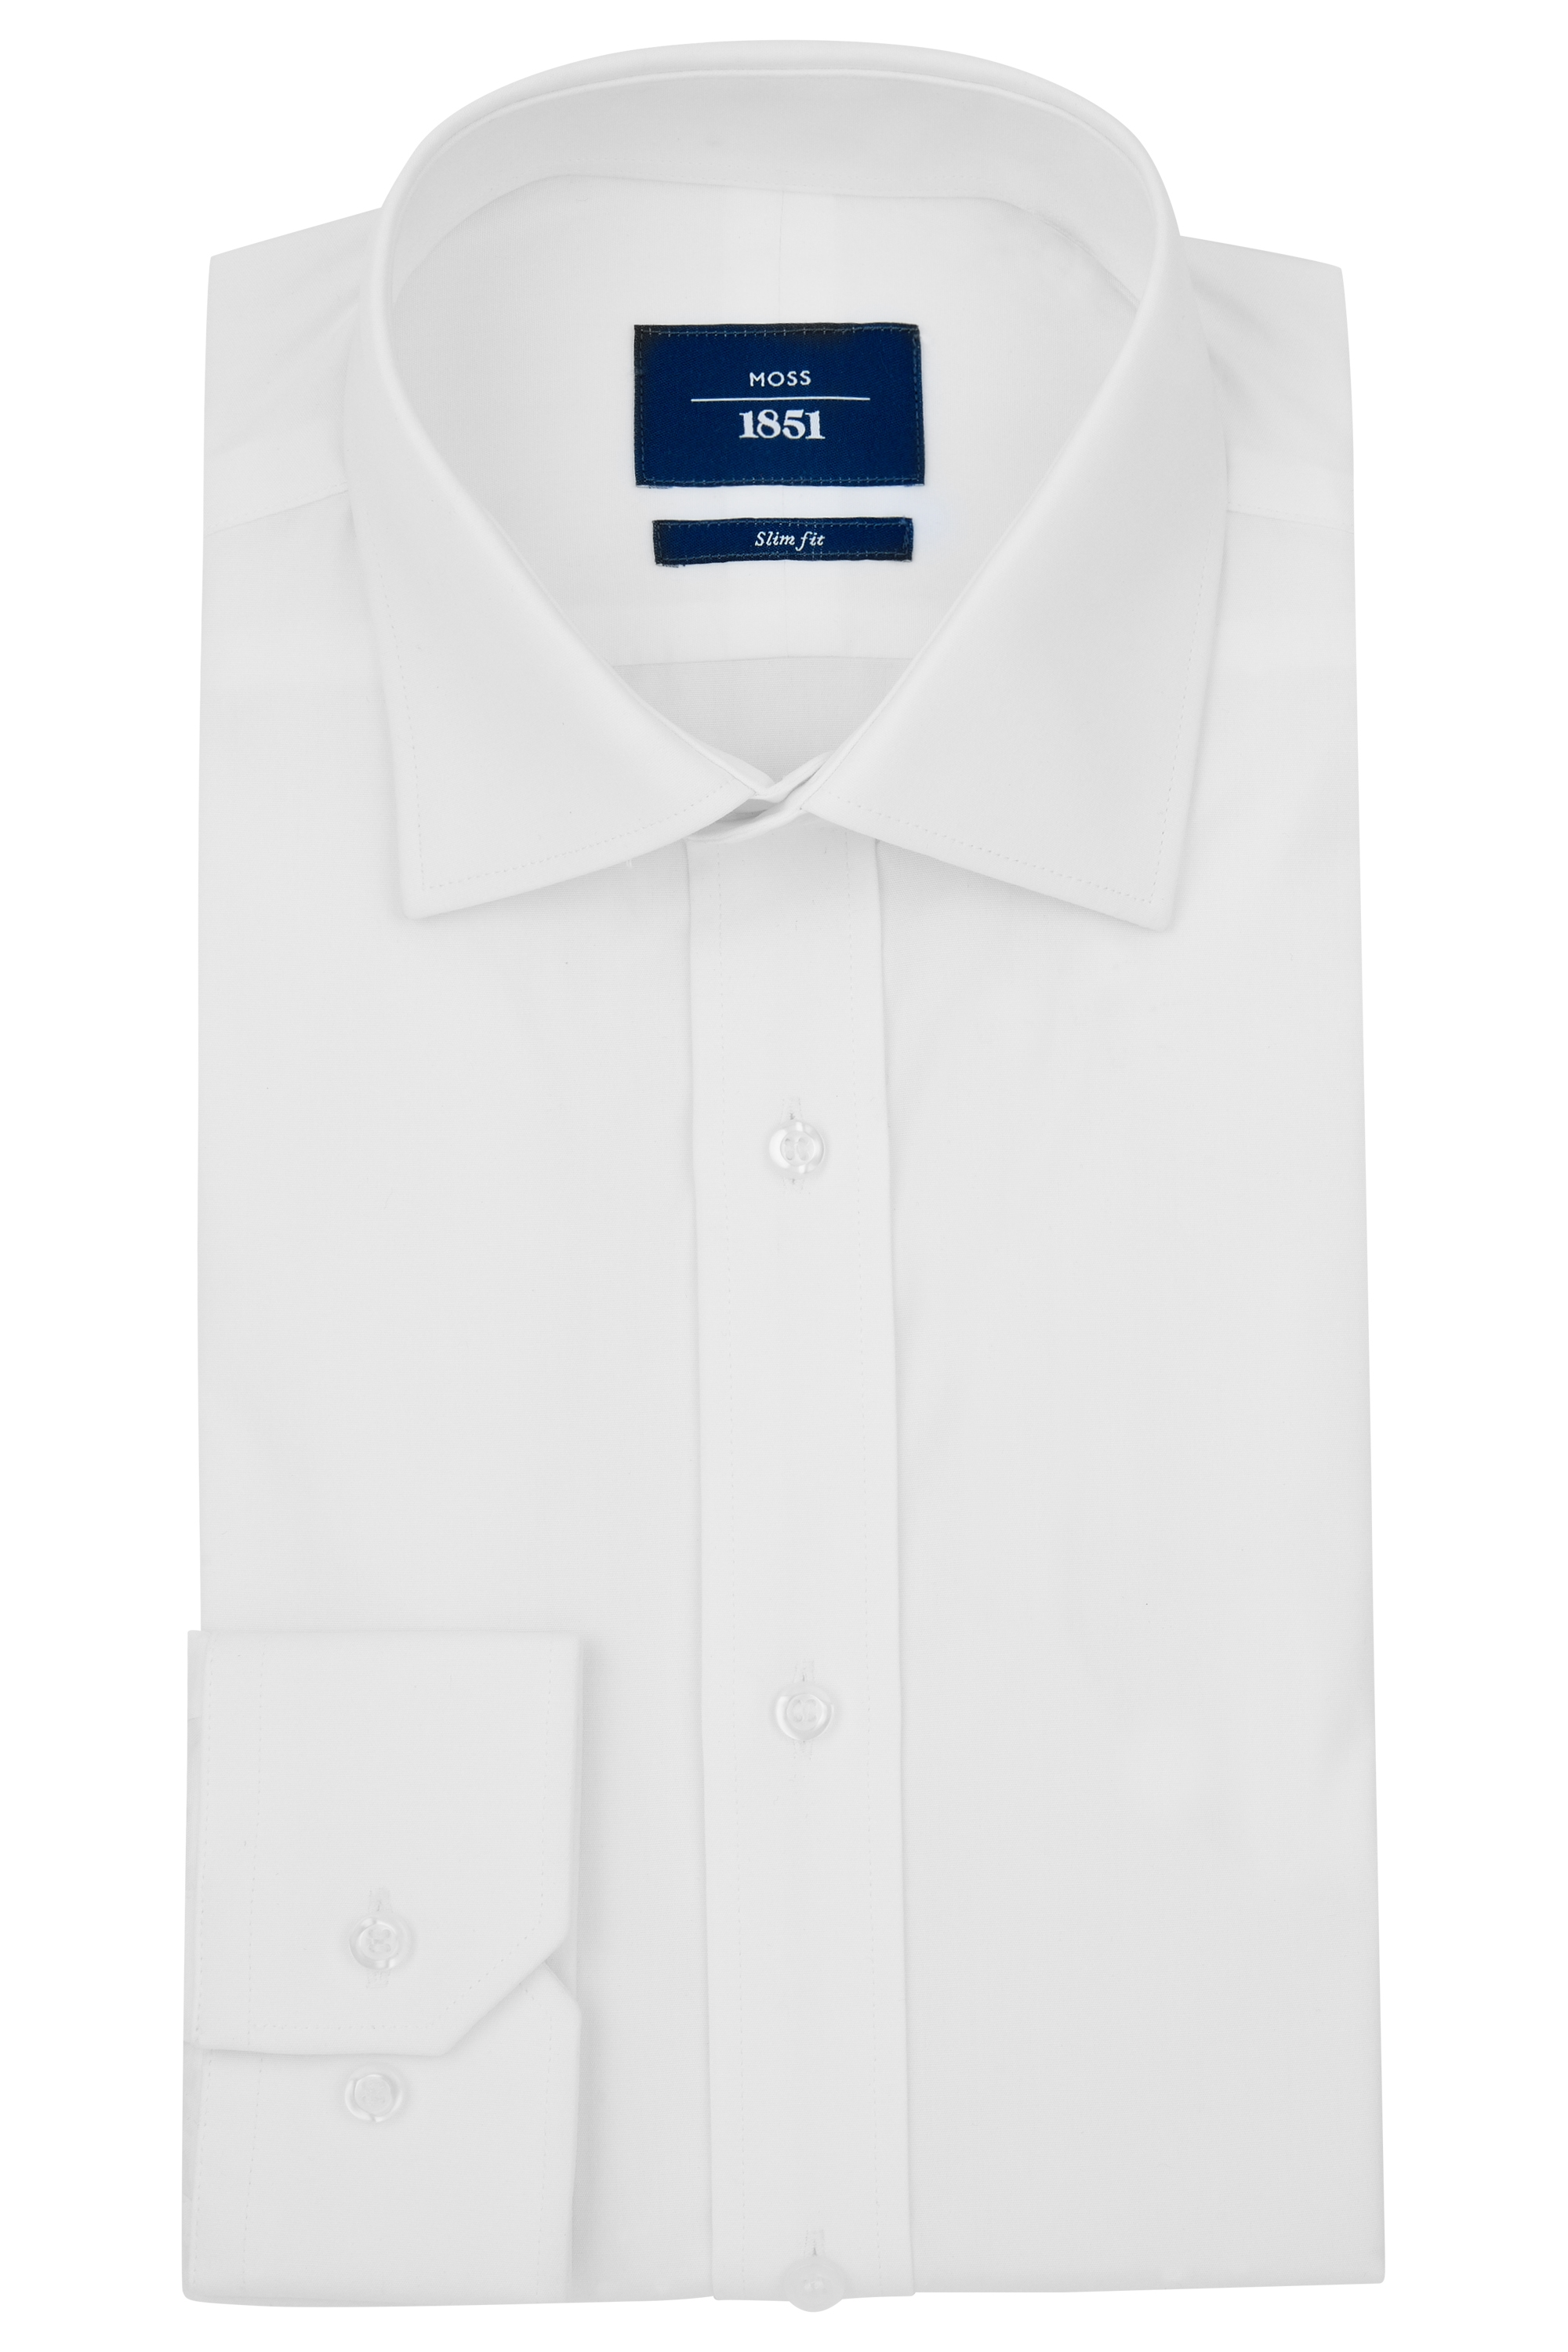 The Marcella shirt is a uniquely British compromise between the formality of the traditional full-dress shirt and the comfort of the American black-tie shirt.